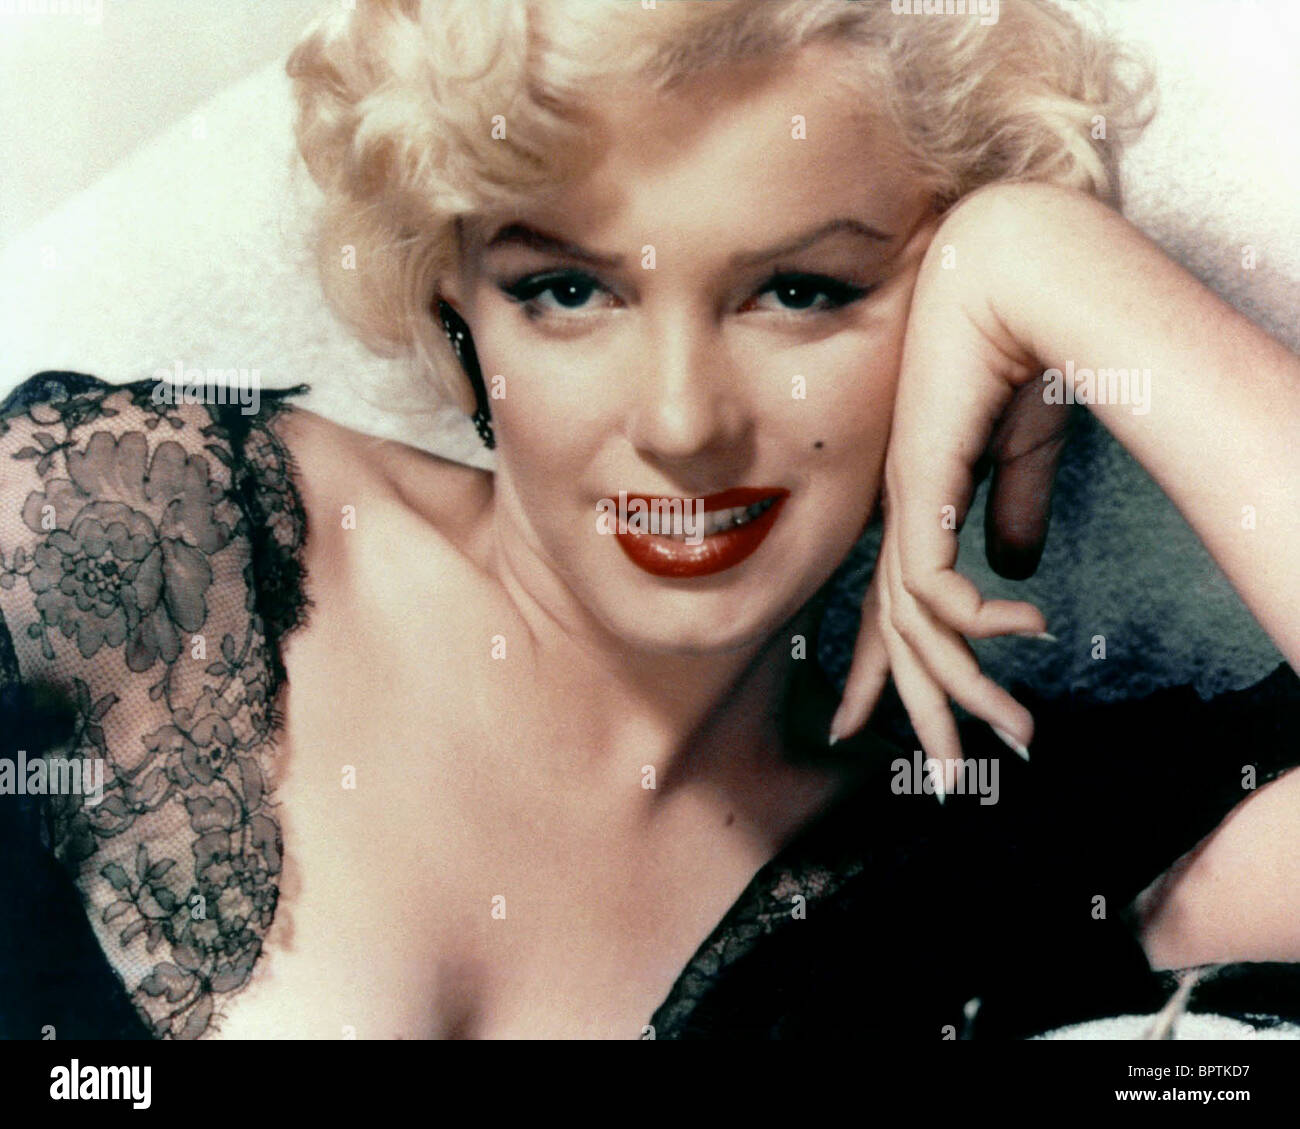 MARILYN MONROE ACTRESS (1957) Stock Foto